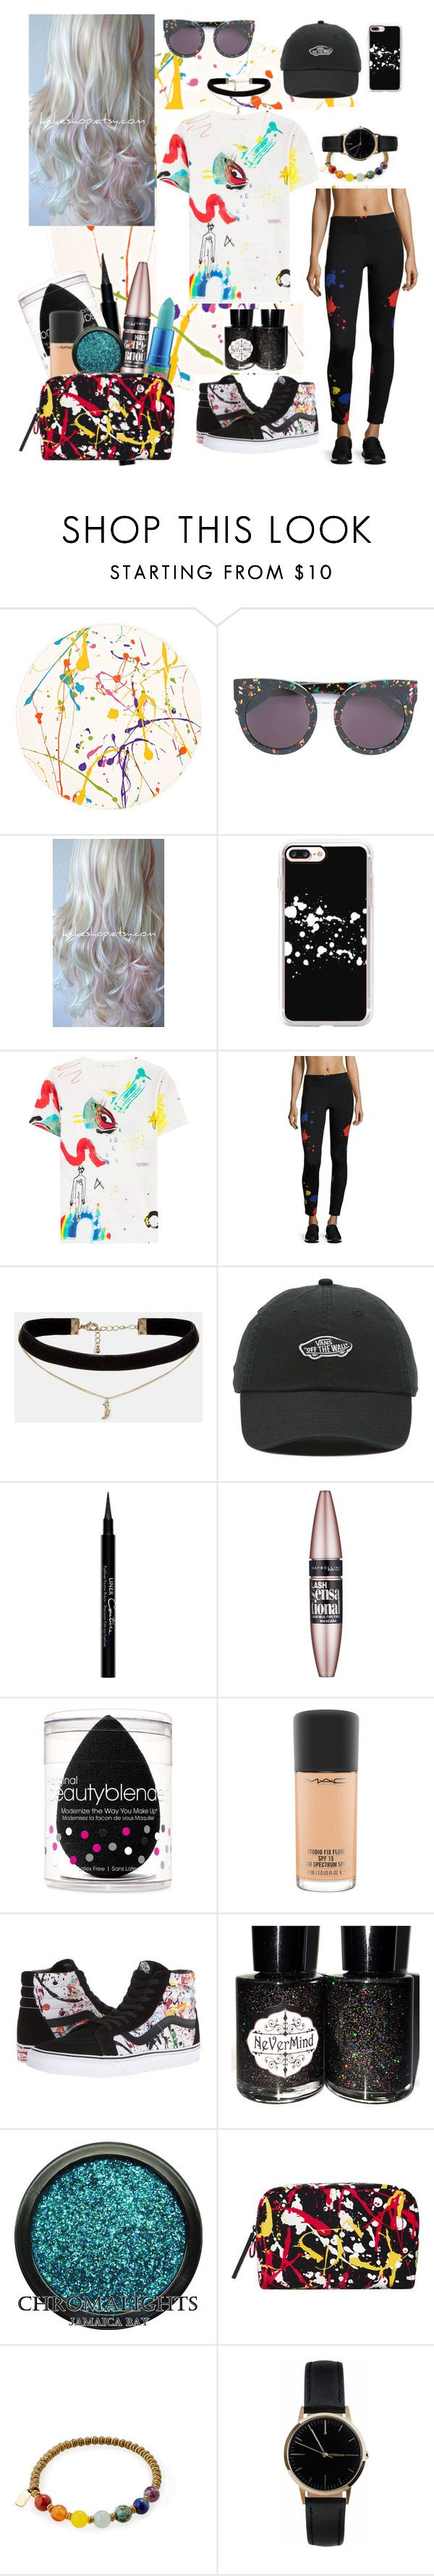 """""""Paint me Perfect"""" by katherinesundin ❤ liked on Polyvore featuring Lisa Perry, STELLA McCARTNEY, Casetify, Marc Jacobs, Alice + Olivia, ASOS, Vans, Givenchy, Maybelline and beautyblender"""